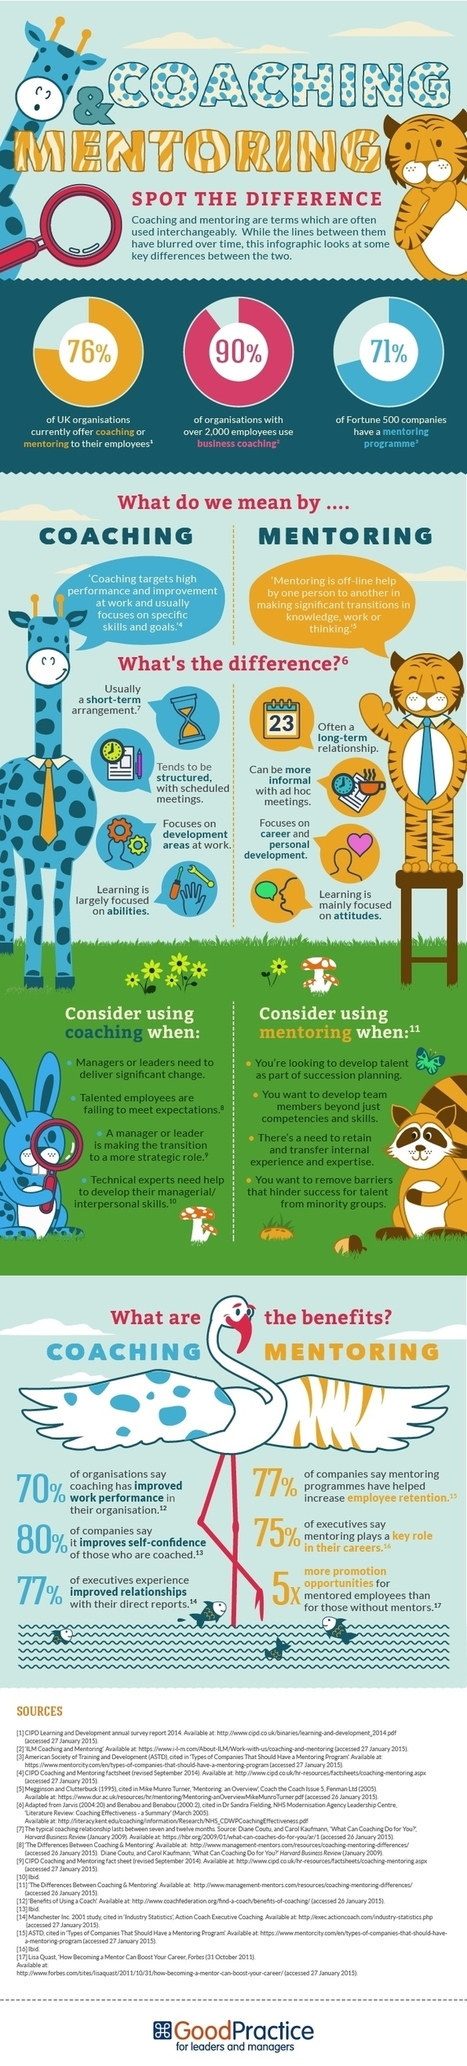 Coaching vs Mentoring Infographic - e-Learning Infographics | L&D News Bits | Scoop.it